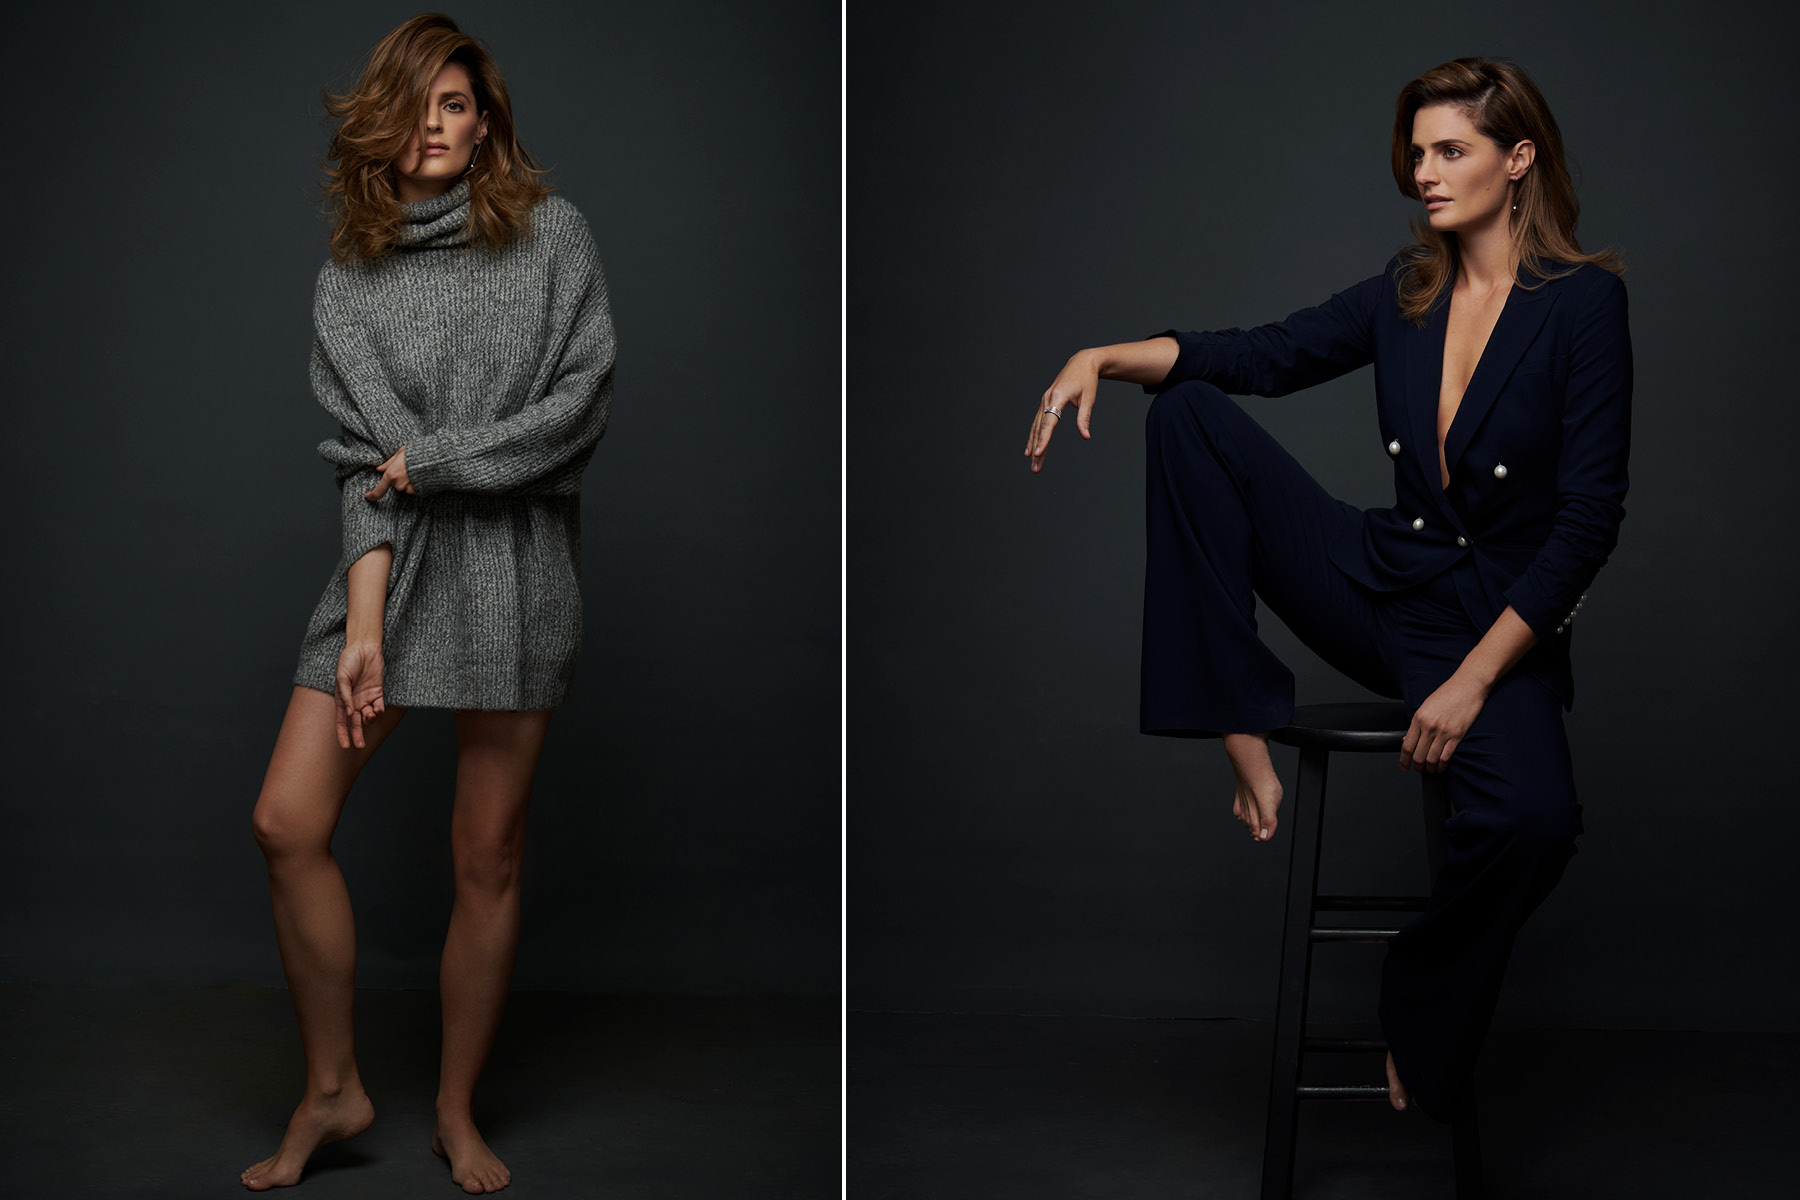 Spirit-&-Flesh-Magazine_STANA-KATIC_by_BRIAN-BOWEN-SMITH_4